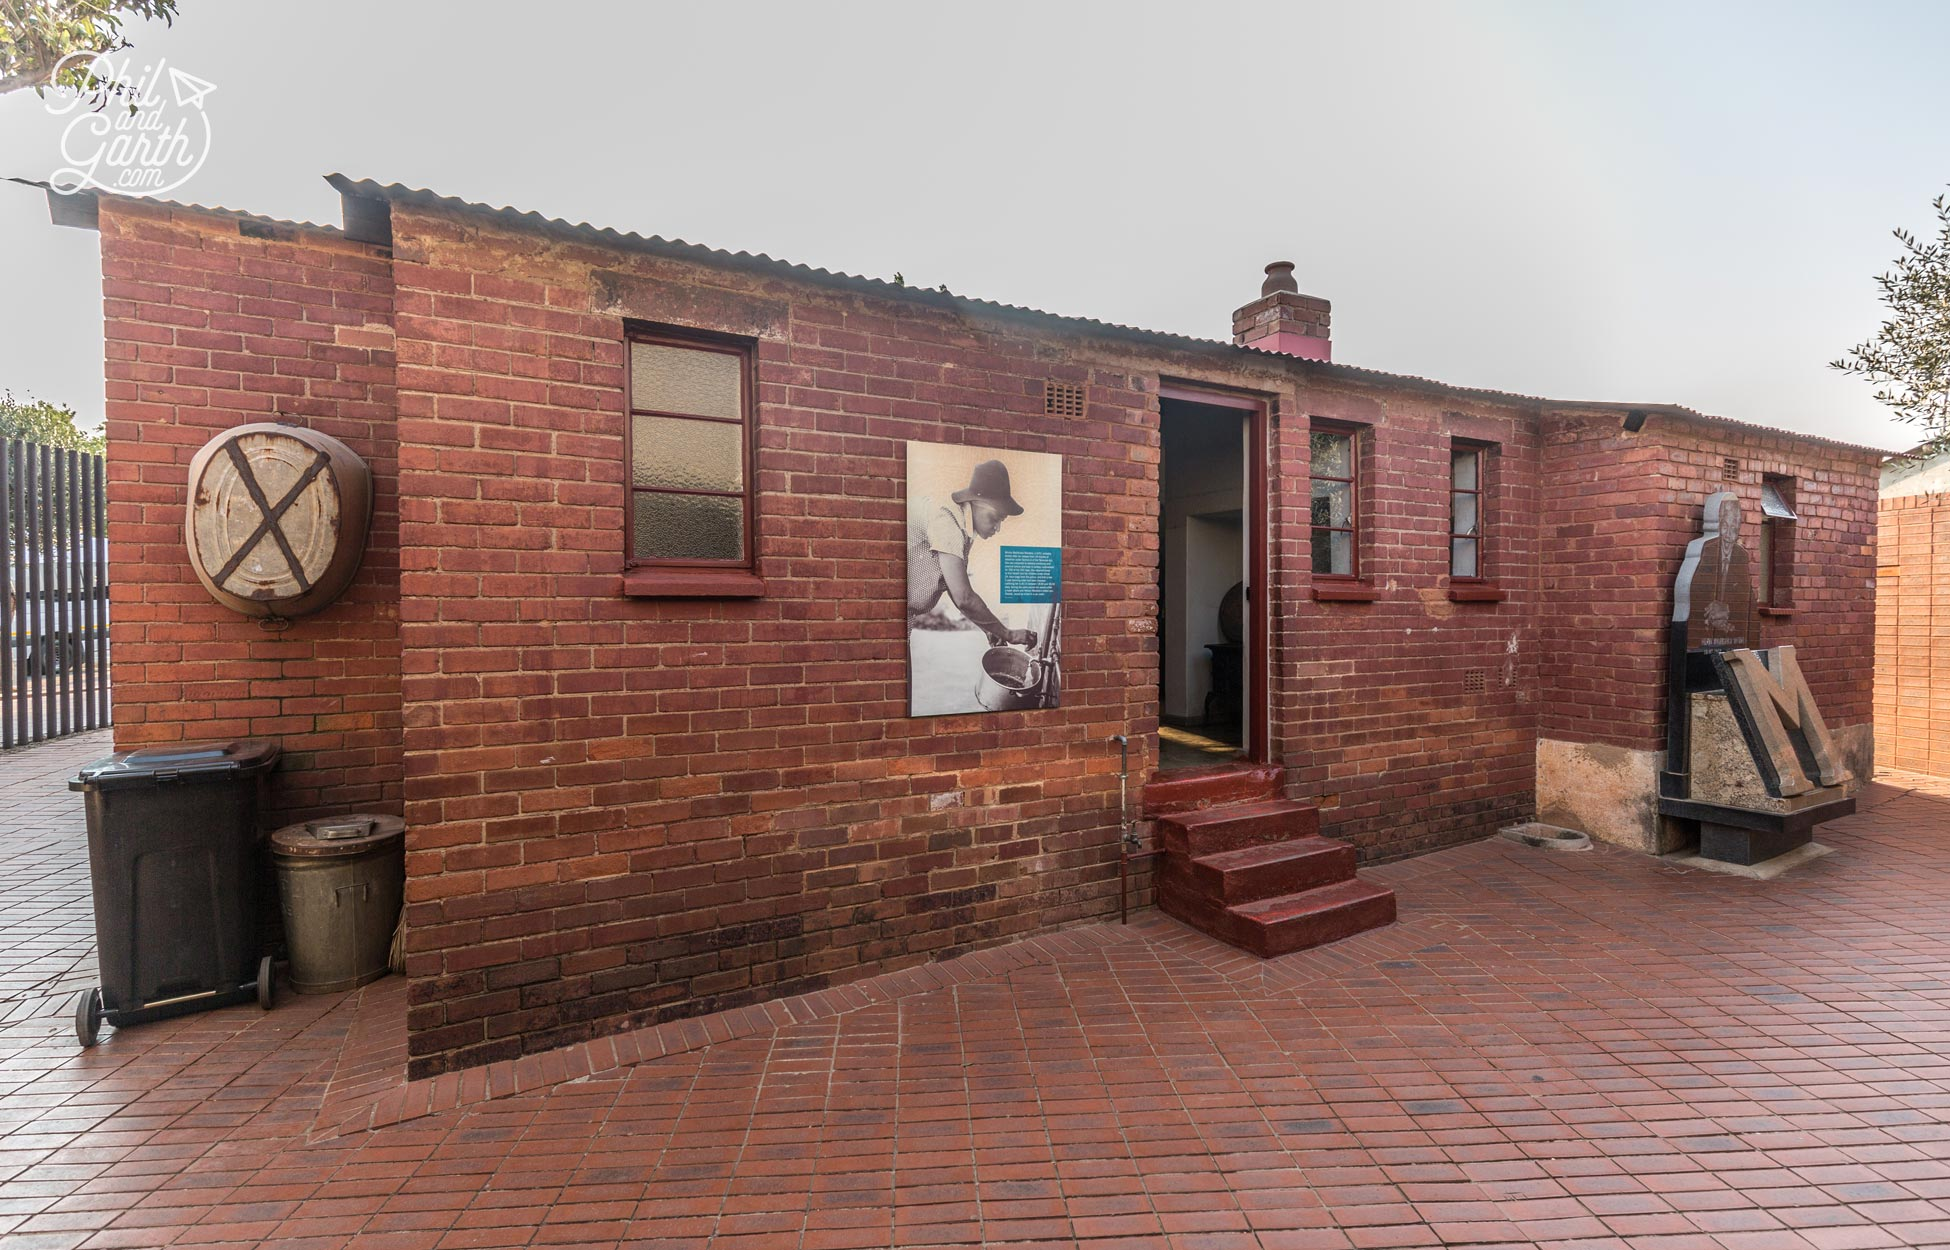 The Mandela House Museum